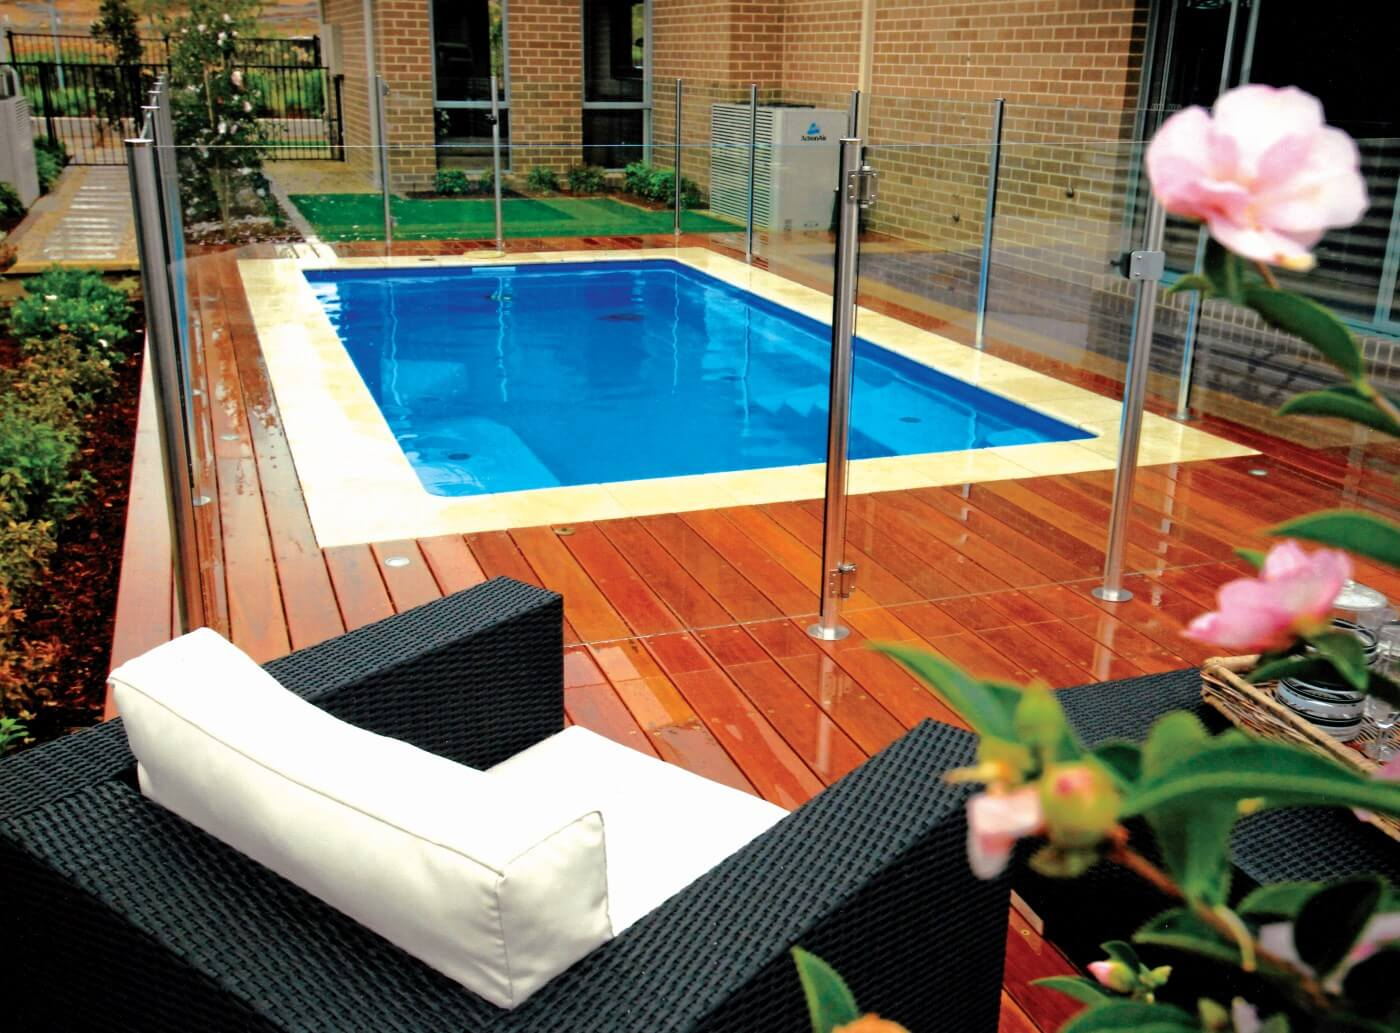 The Best Pool Design Ideas For Your Backyard Compass Pools Australia within Pool Ideas For Backyards